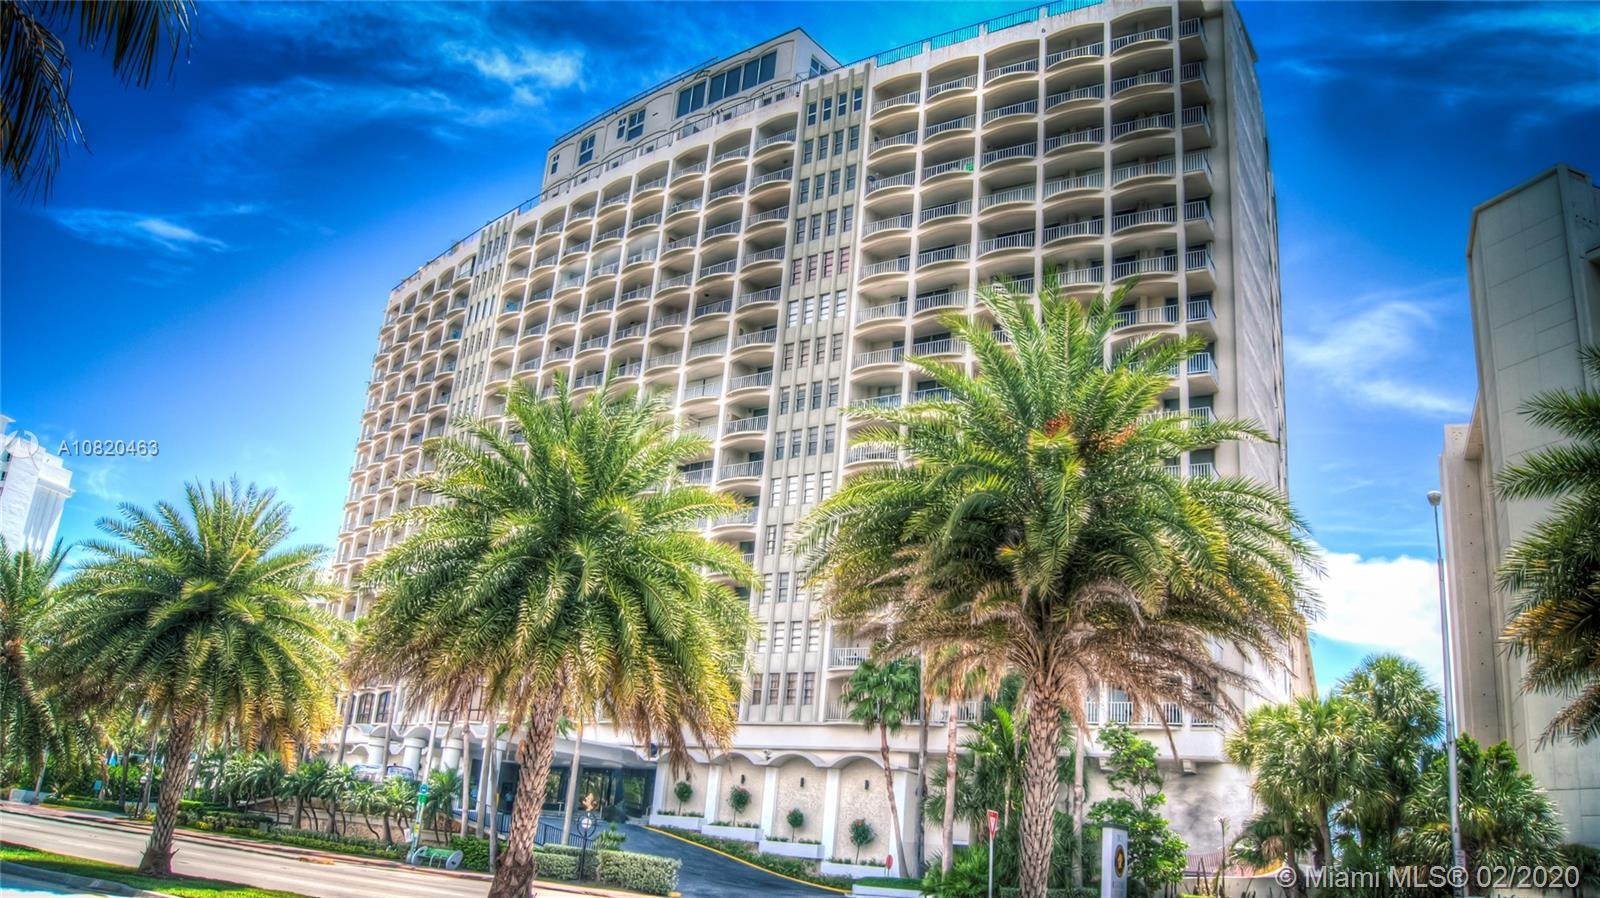 ** SPECTACULAR INTRACOASTAL - CITY & BAY VIEW ** Enjoy this large studio converted to 1 bedroom, 1 b